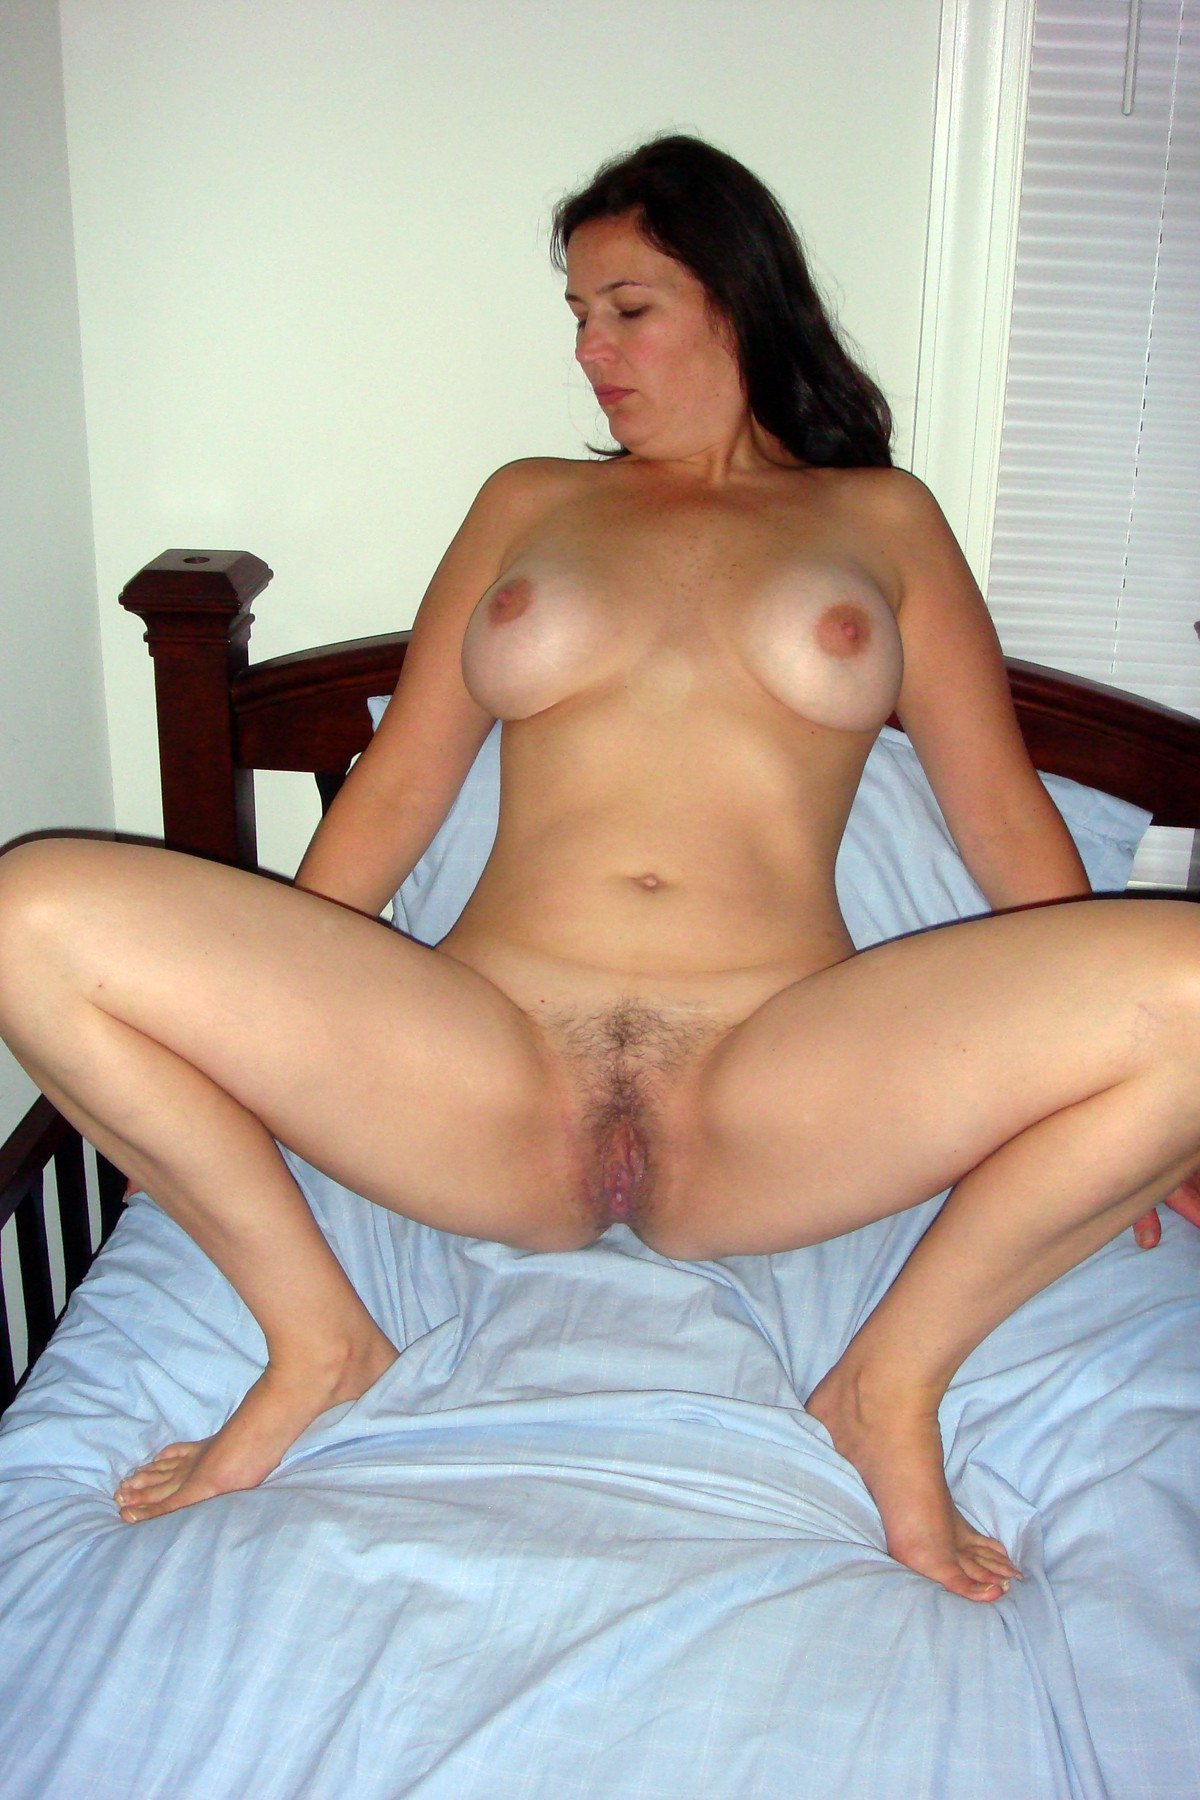 Hot sex xoxoxo party real cfnm amateur hotties